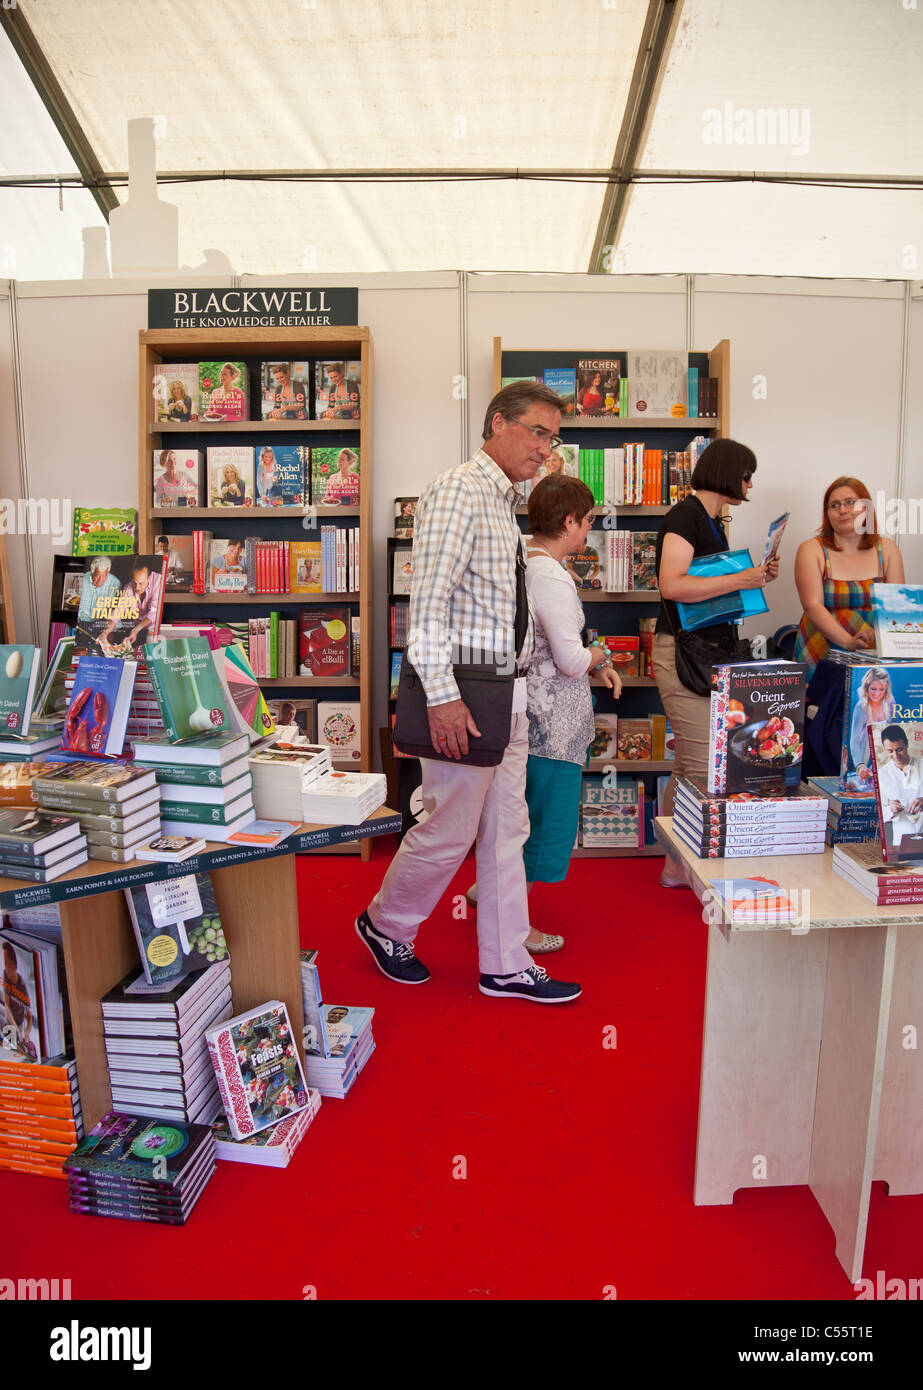 Blackwell Booksellers tent selling cookery books at the Taste of Edinburgh 2011 event at The Meadows - Stock Image